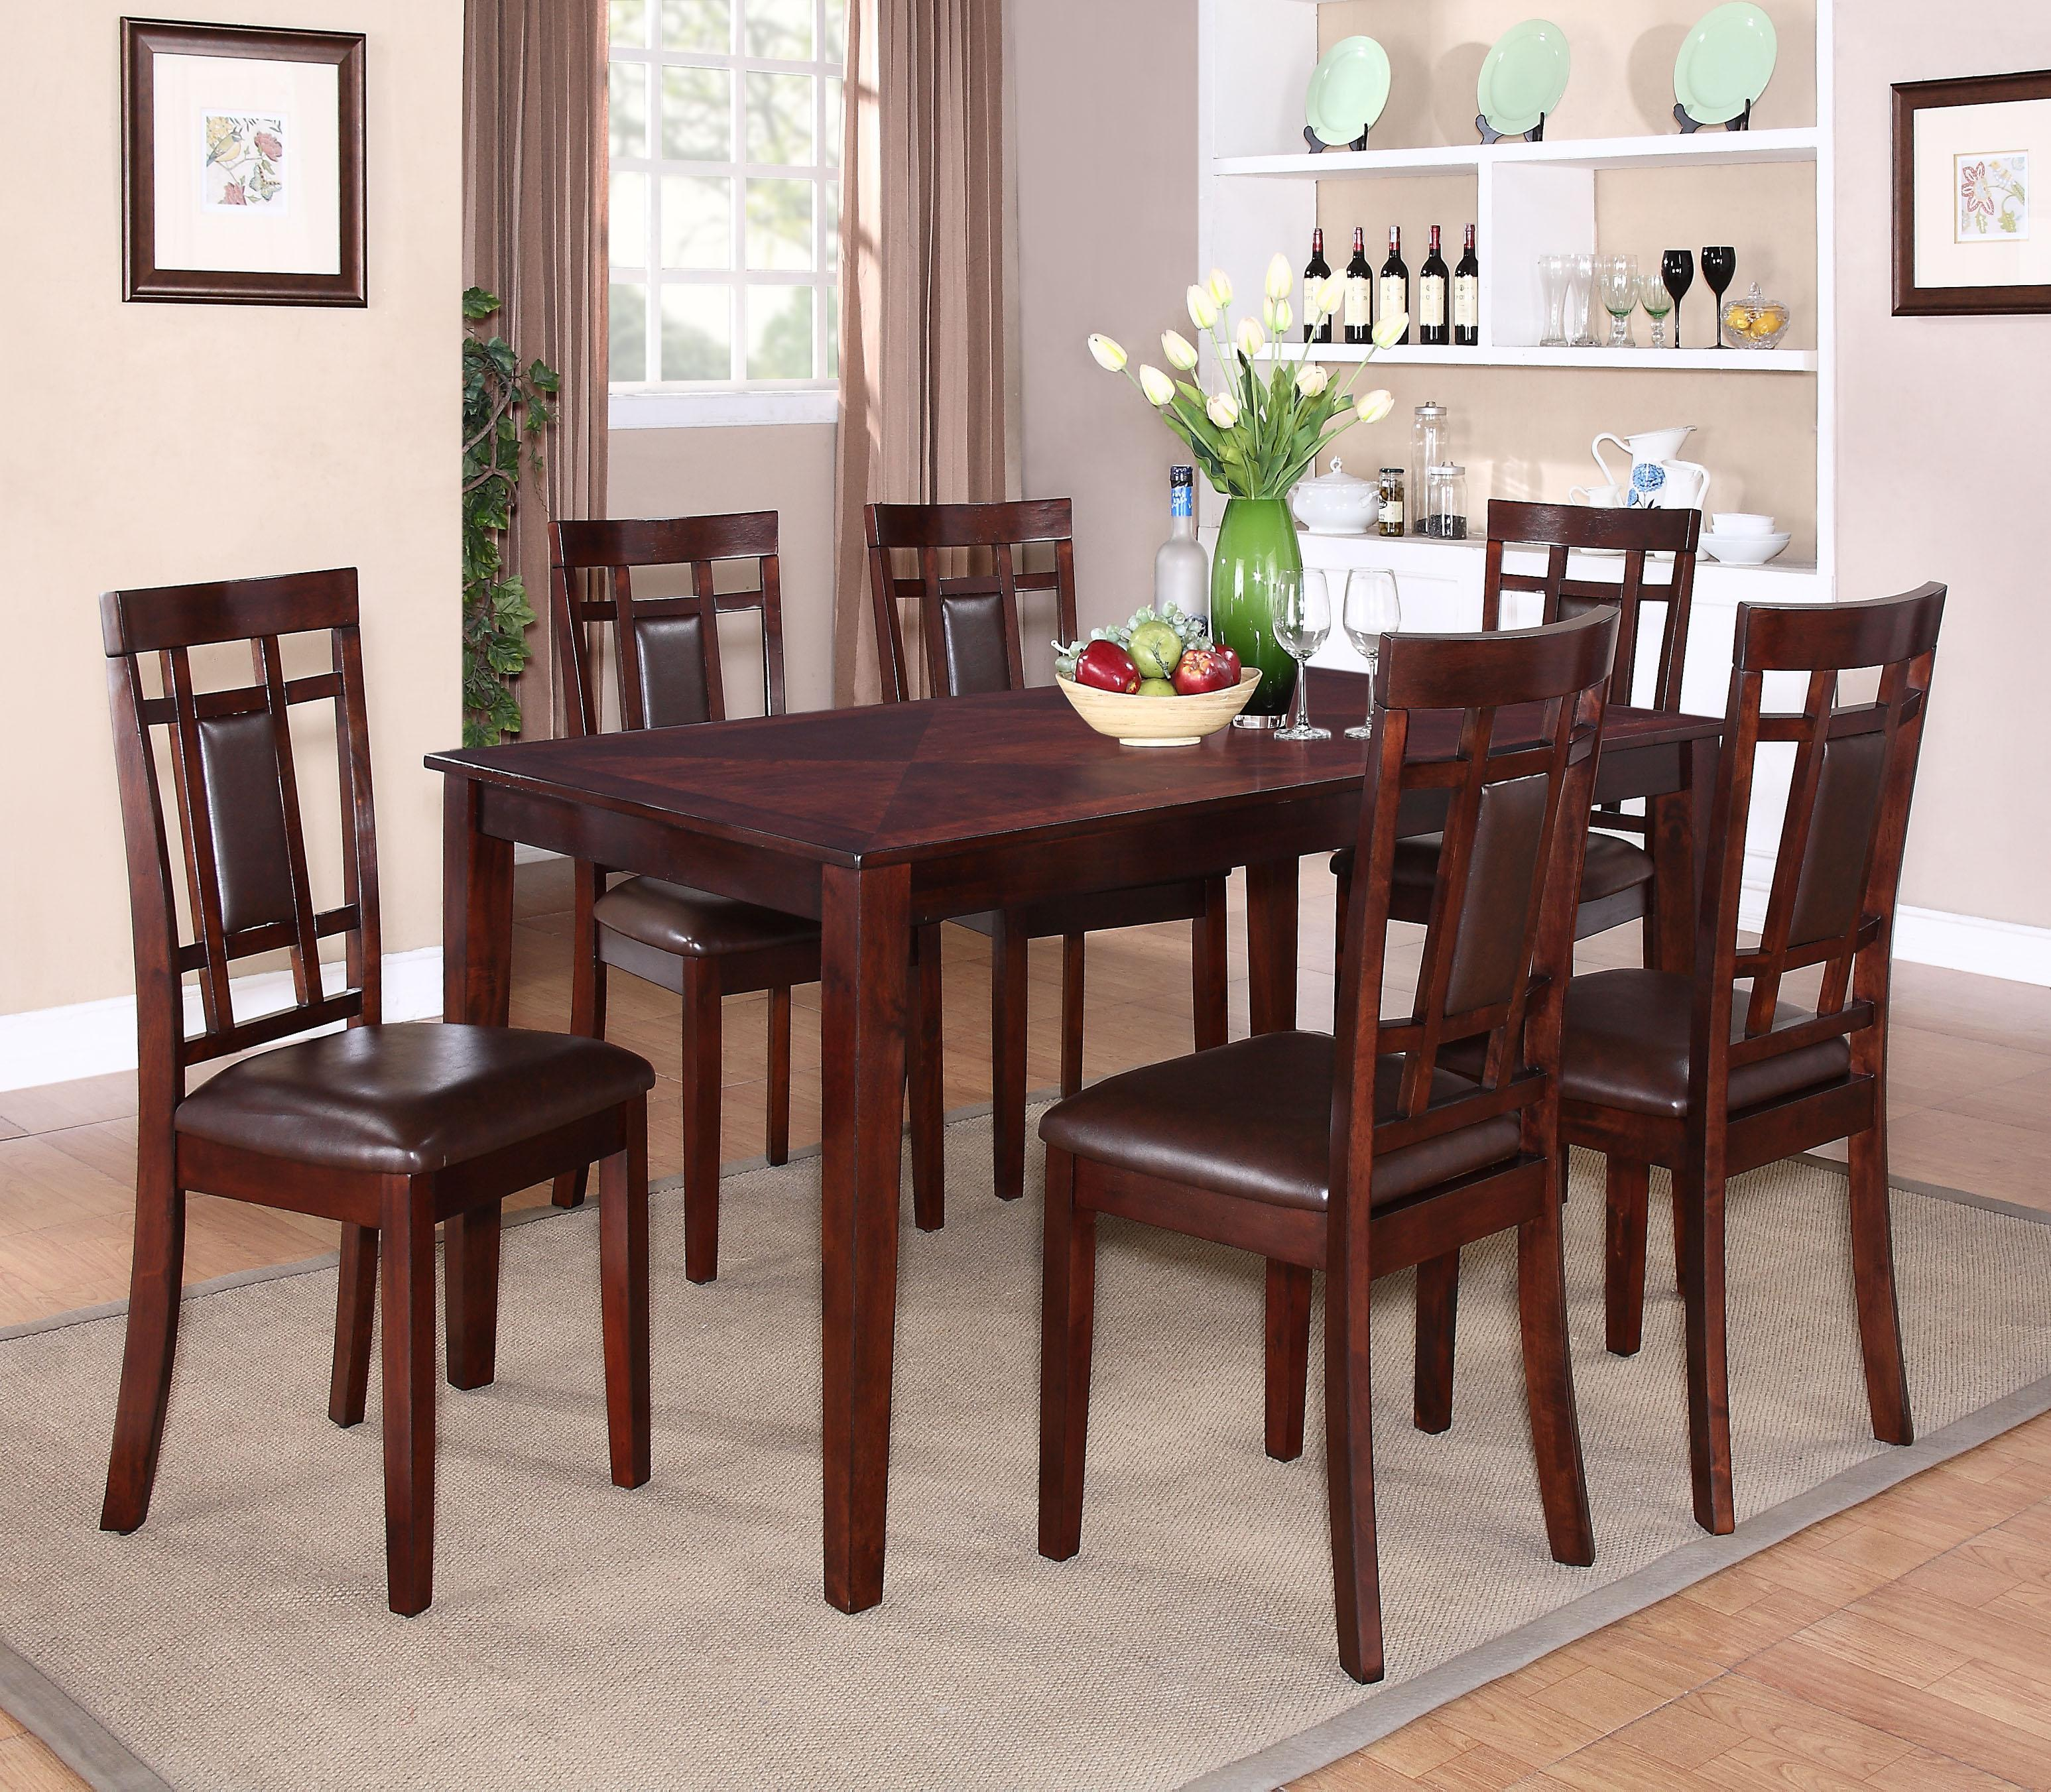 Standard Furniture Westlake 7 Piece Table   Chair Set. Table and Chair Sets   Memphis  TN  Southaven  MS Table and Chair